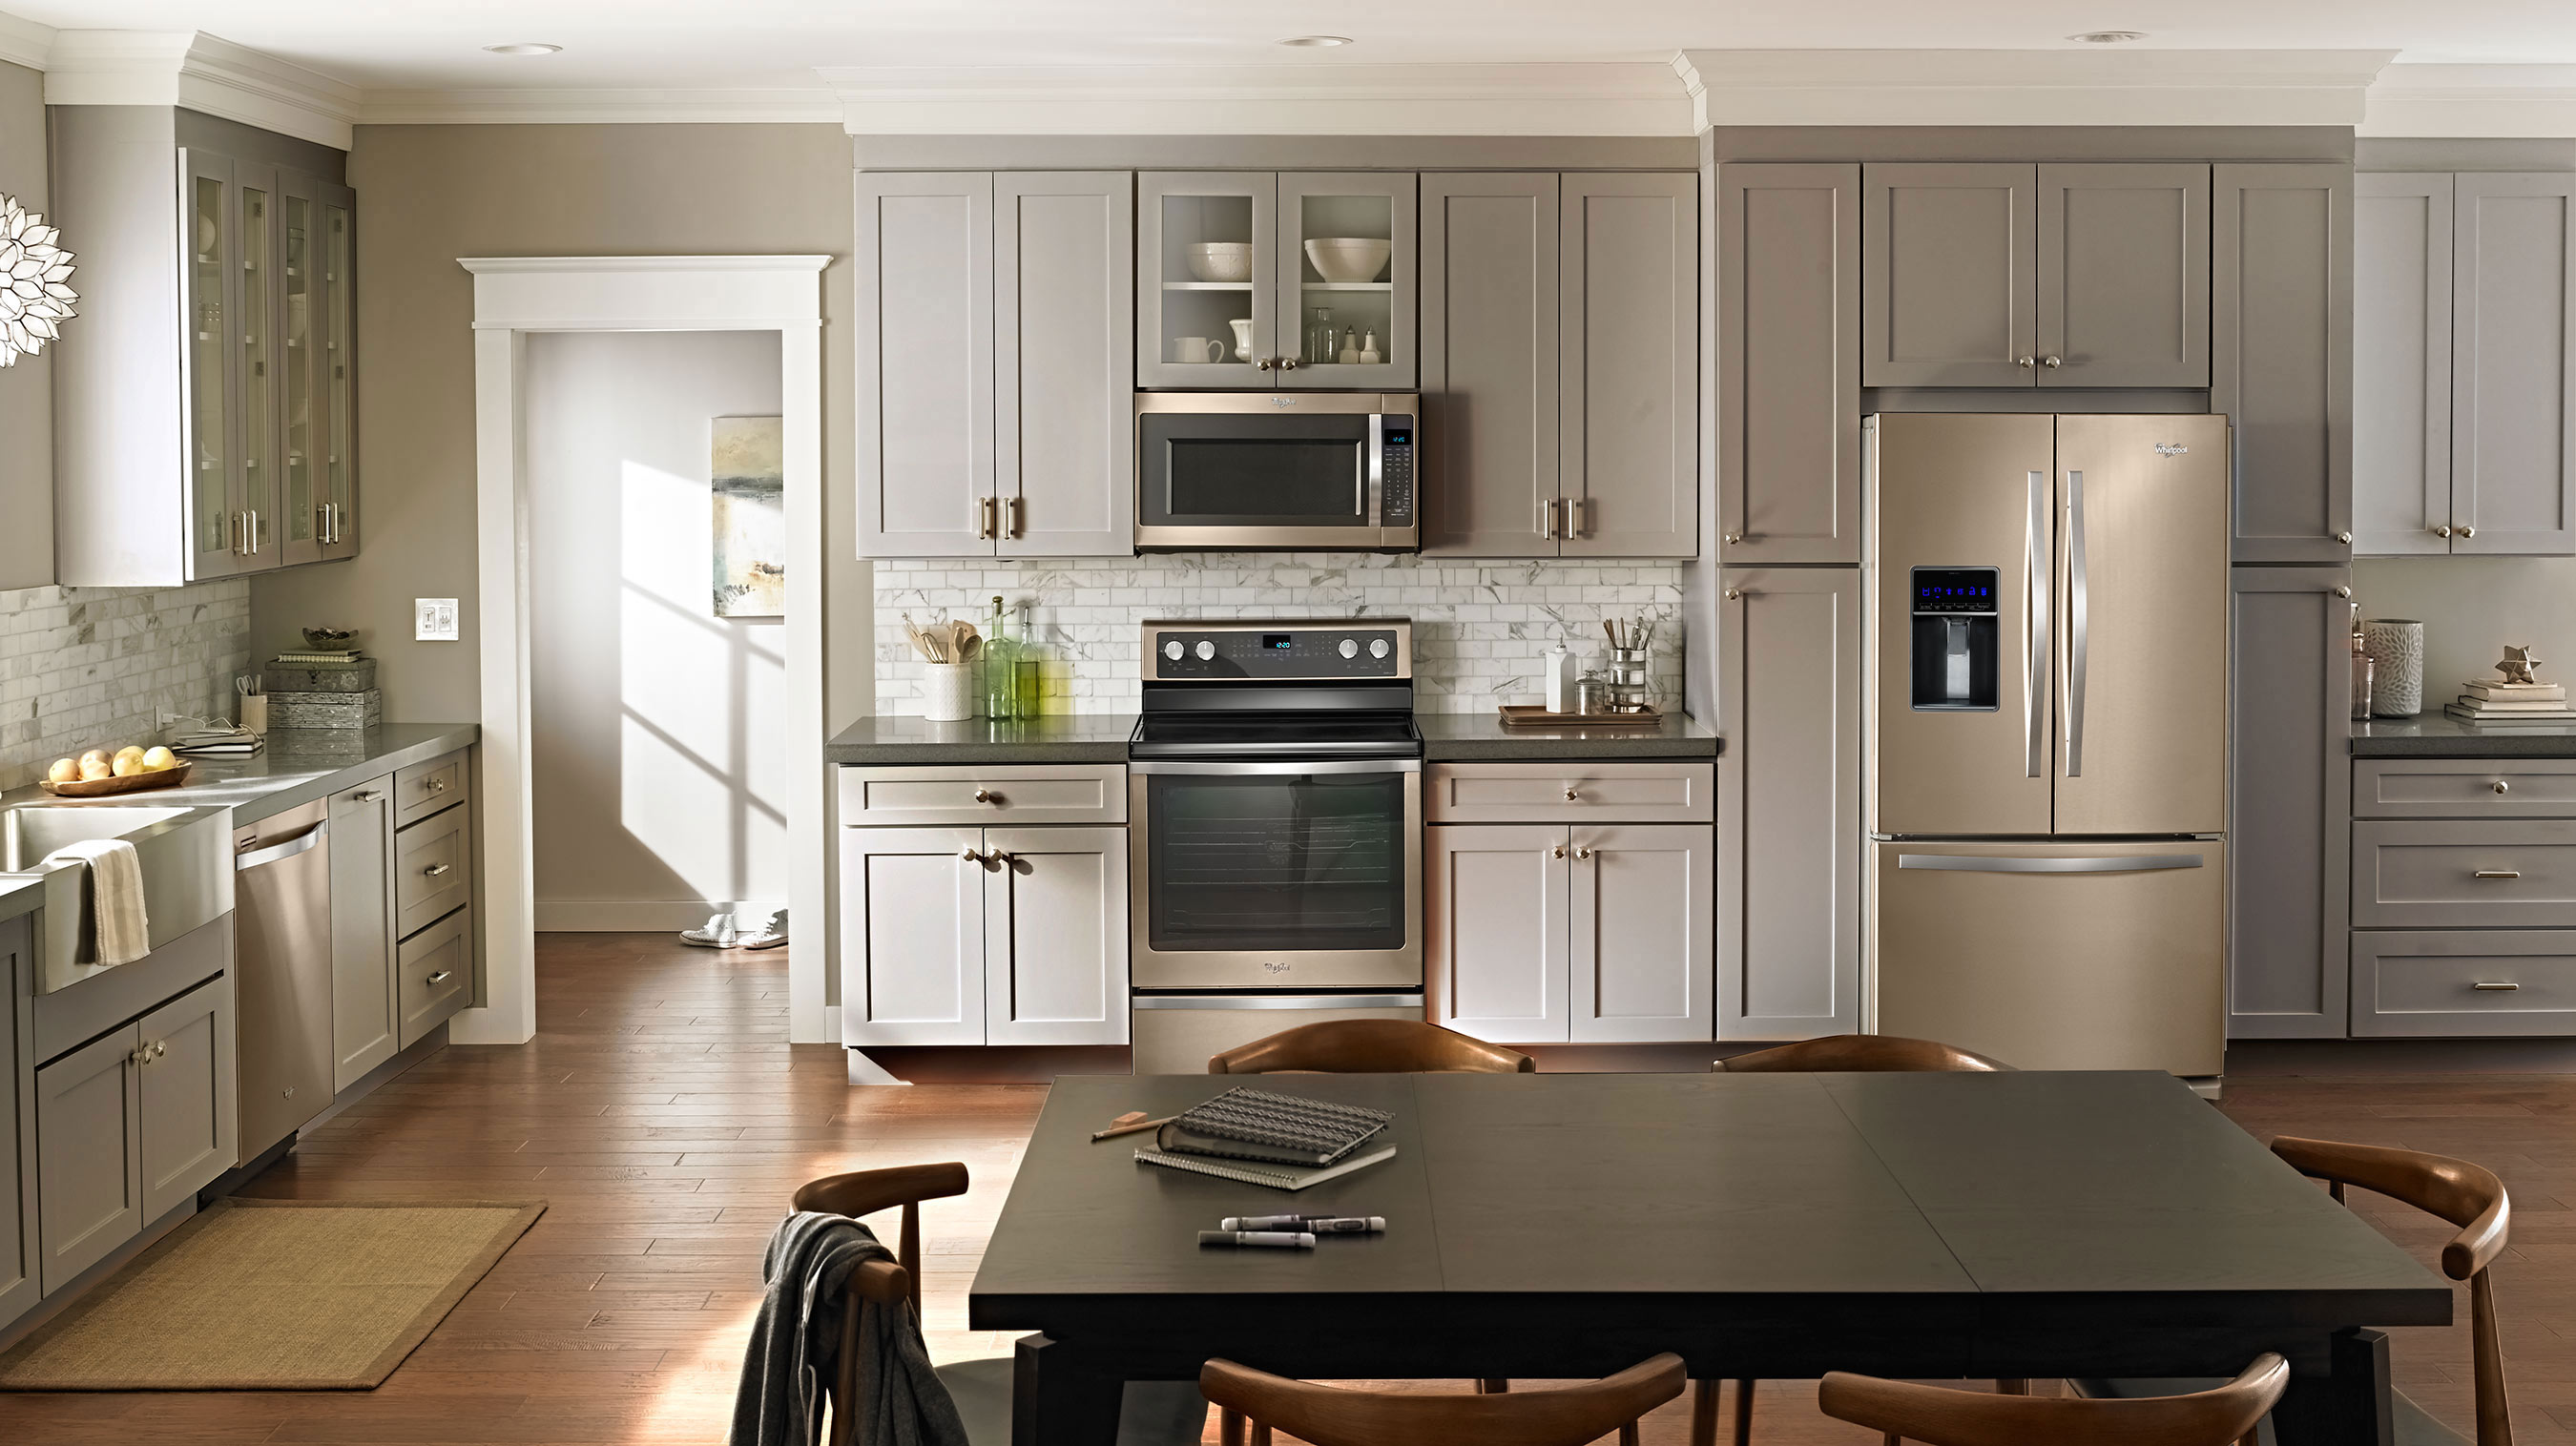 White Kitchen Cabinets With Champaign Gold Hardware Images